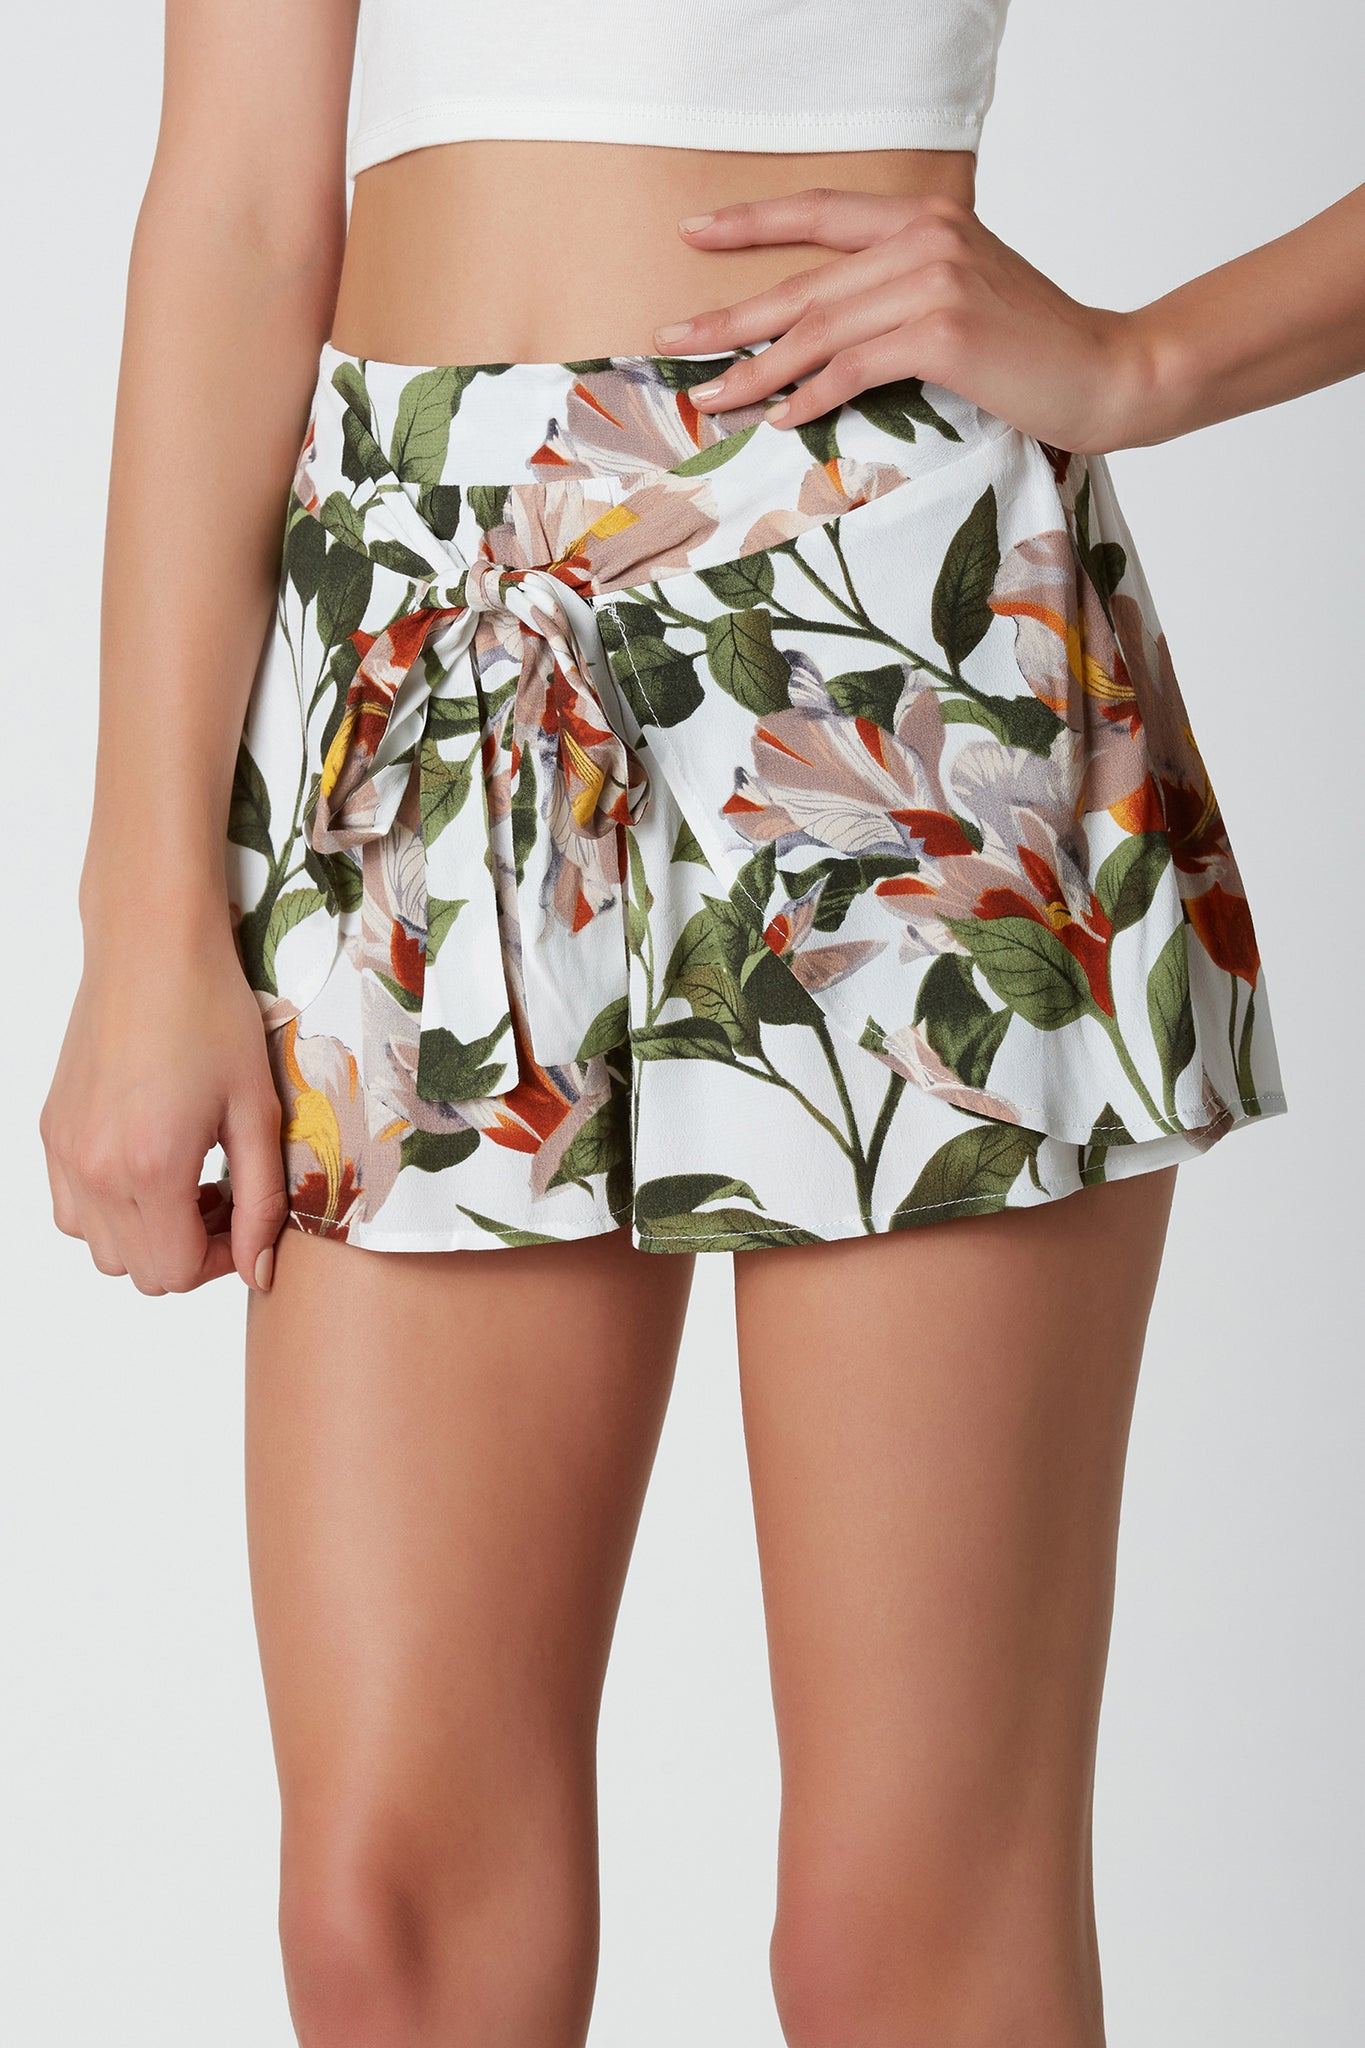 Flirty printed shorts with A-line hem and floral patterns throughout. Front tie design with comfortable elasticized waistband.